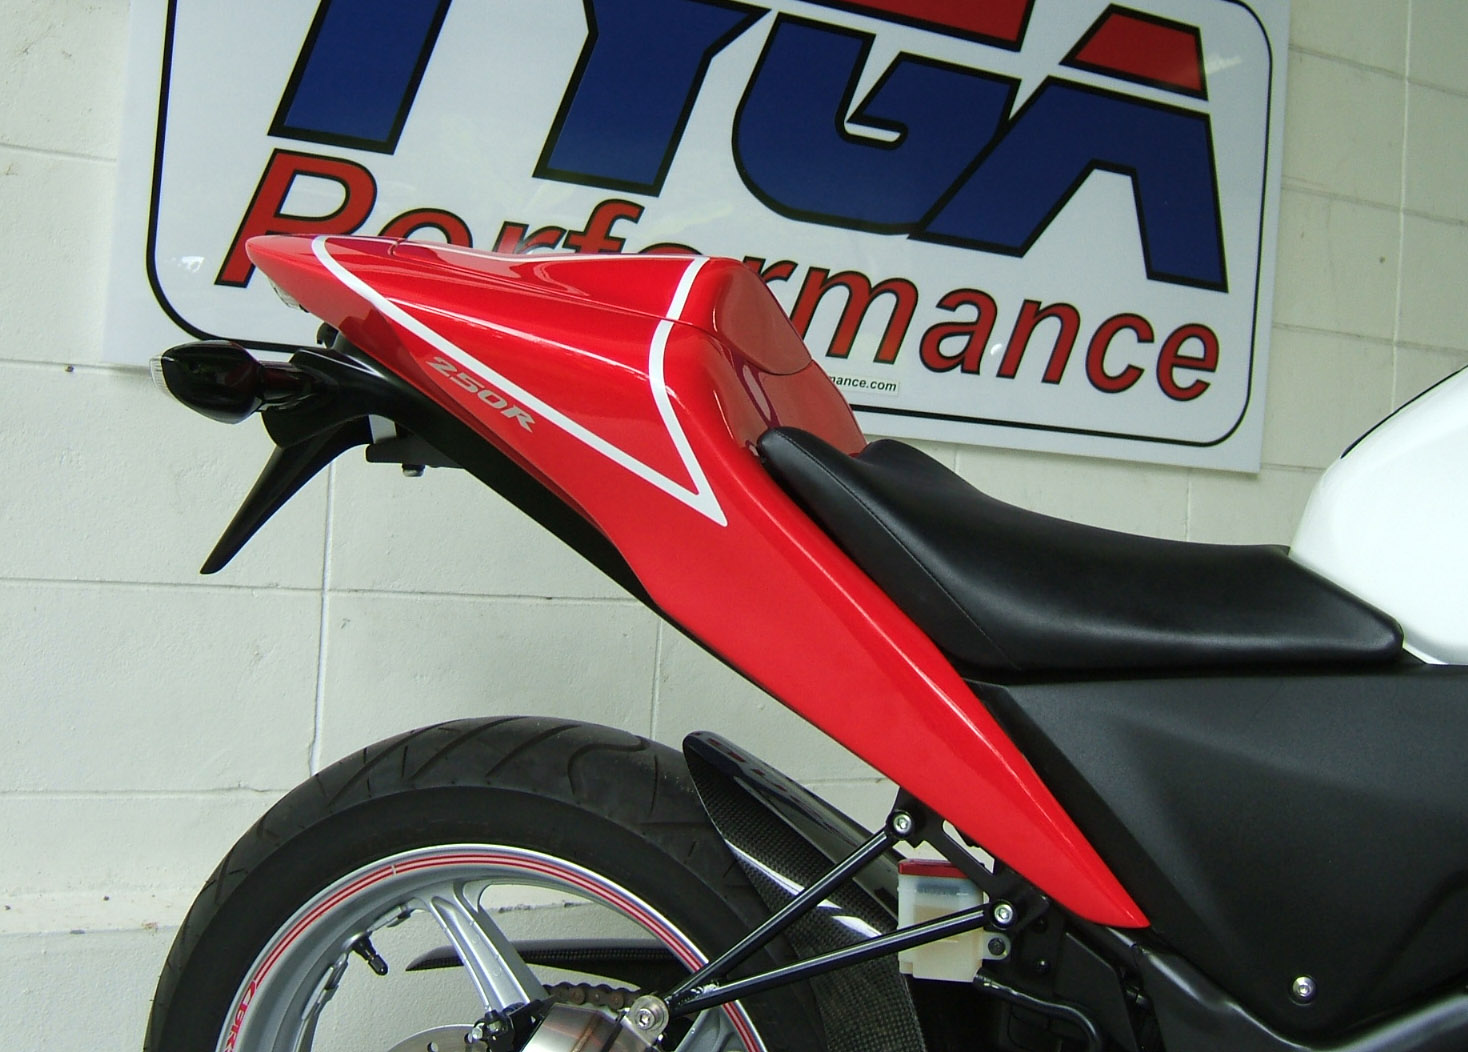 Tyga Tail For 2011 Cbr250r Performance Fender Eliminator New Honda Cbr 250rr Installation Of The Kit Is Really Easy And You Only Need A Few Basic Tools Biggest Job Removing All Stock Ballast